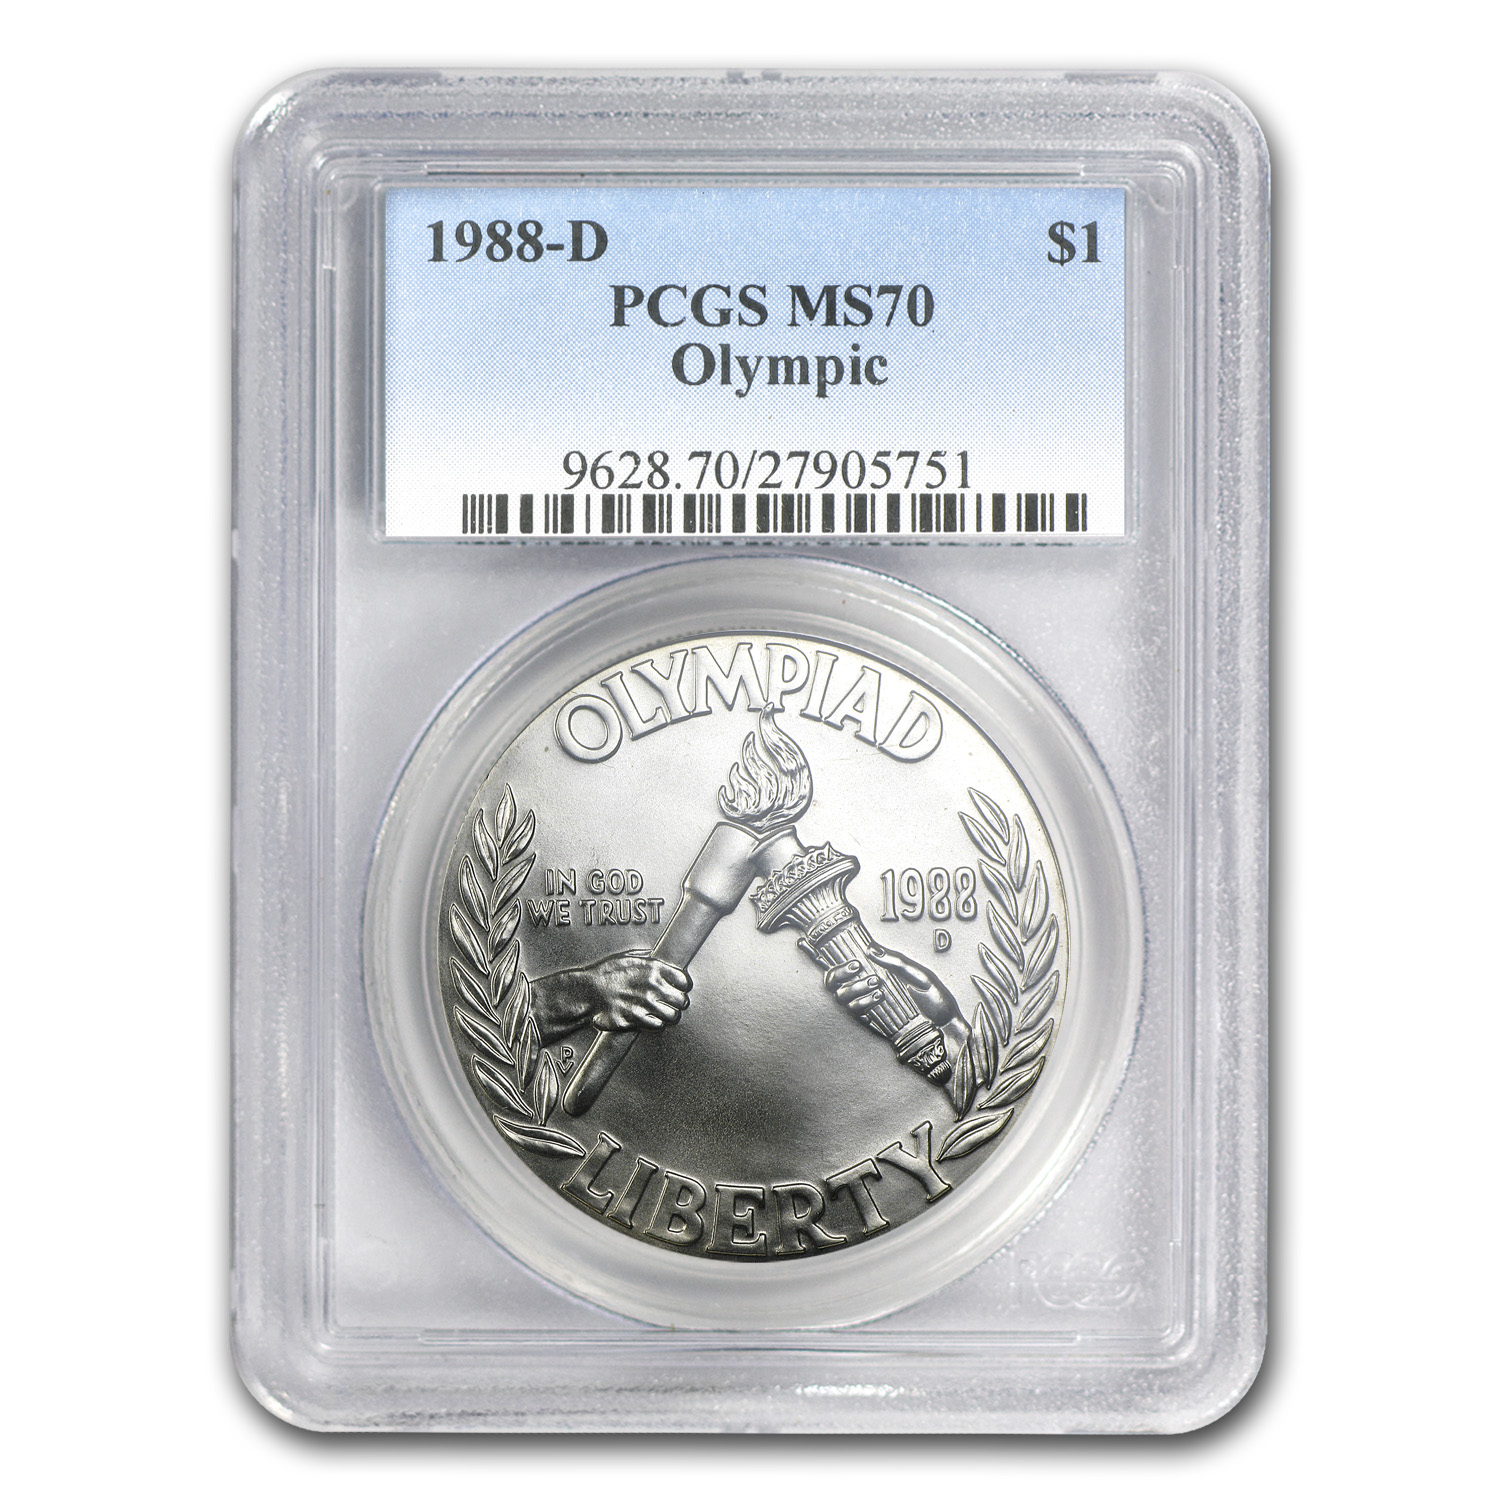 1988-D Olympic $1 Silver Commemorative MS-70 PCGS Registry Set